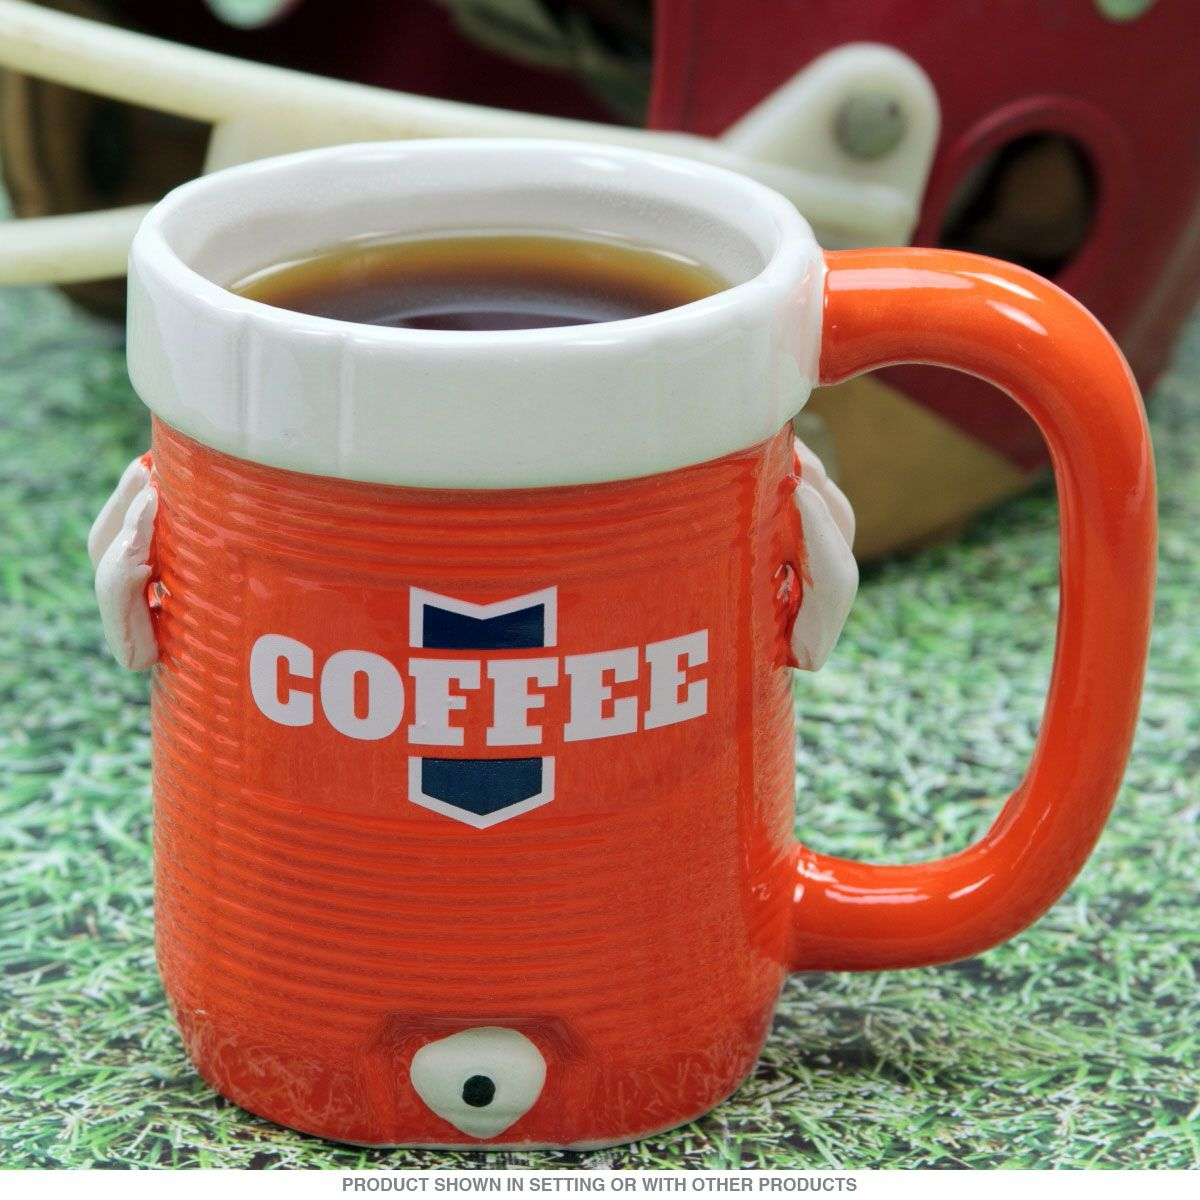 Funny 12 Oz. Coffee Cup With Novelty Design Of